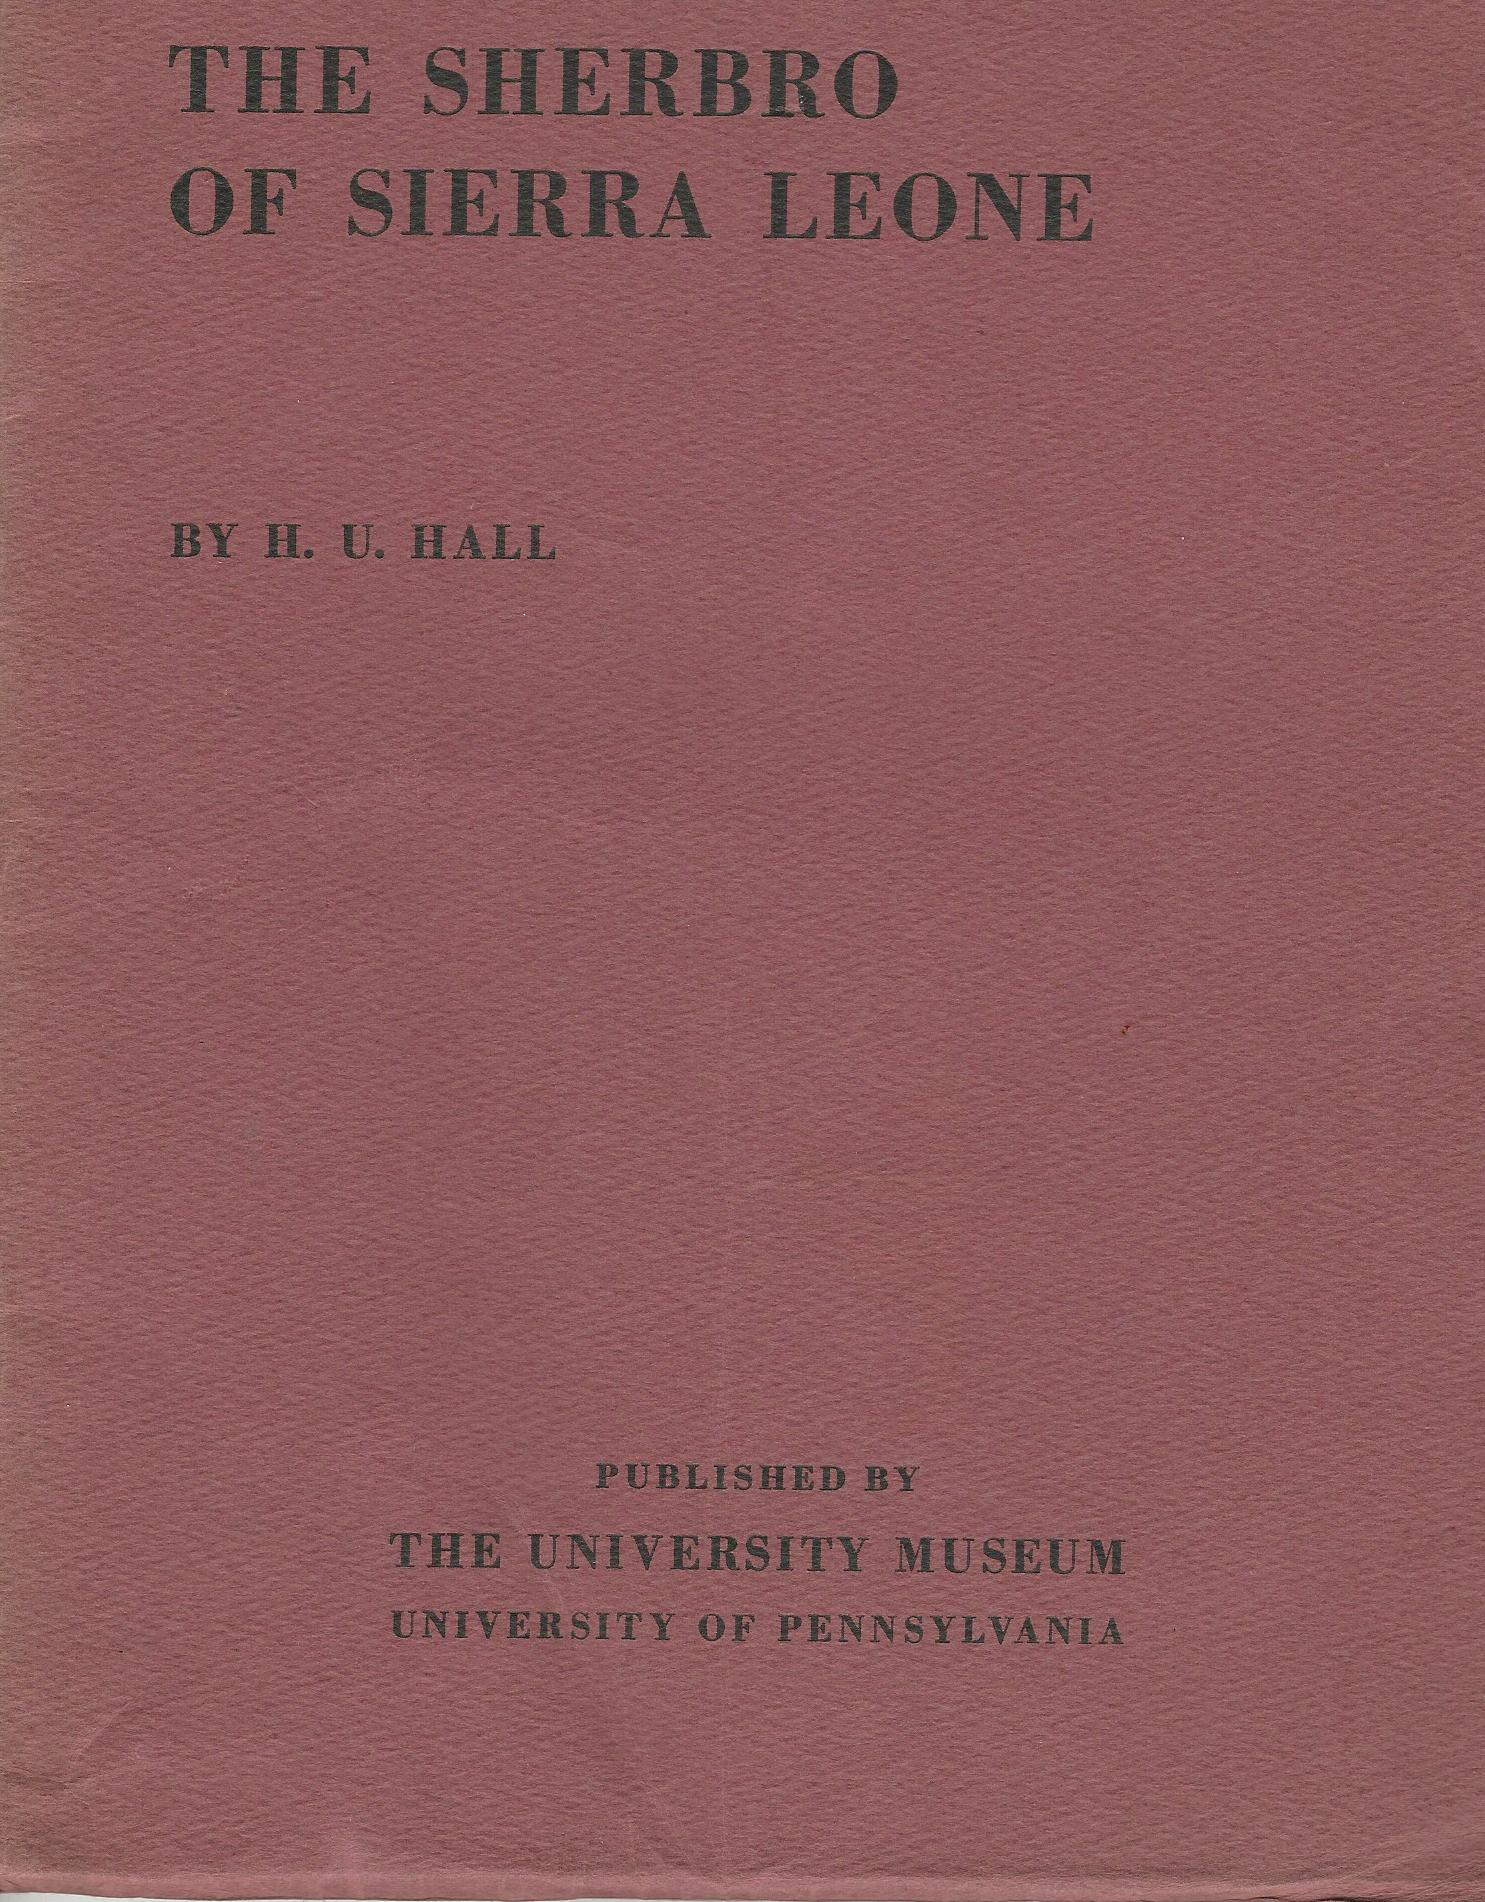 Image for The Sherbro of Sierra Leone: A preliminary Report on the Work of the University Museum's Expedition to West Africa, 1937.